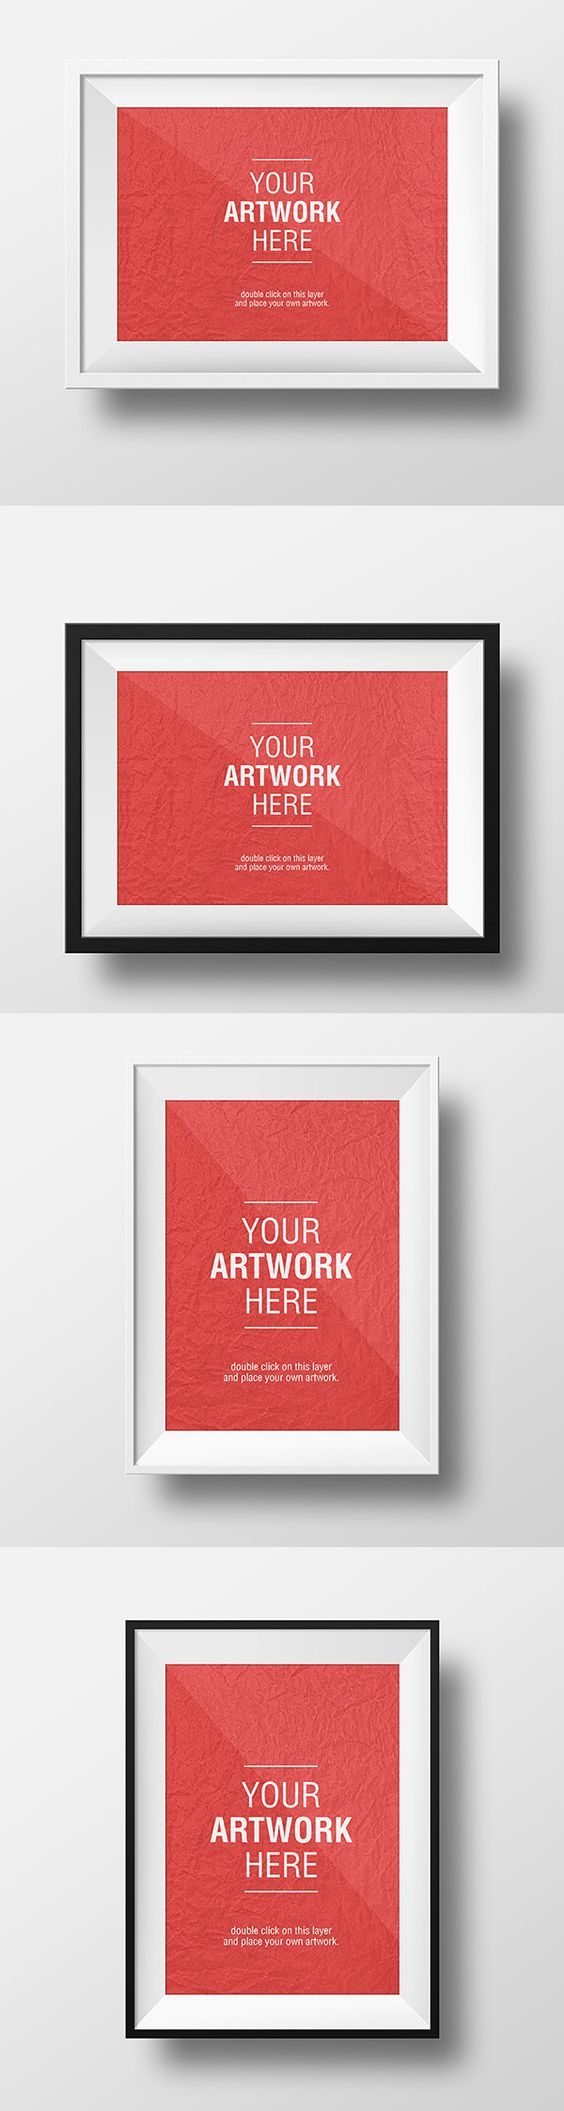 Poster design mockup - Free 3 Realistic Poster Gallery Mockup Poster Mockup Psd Pinterest Mockup